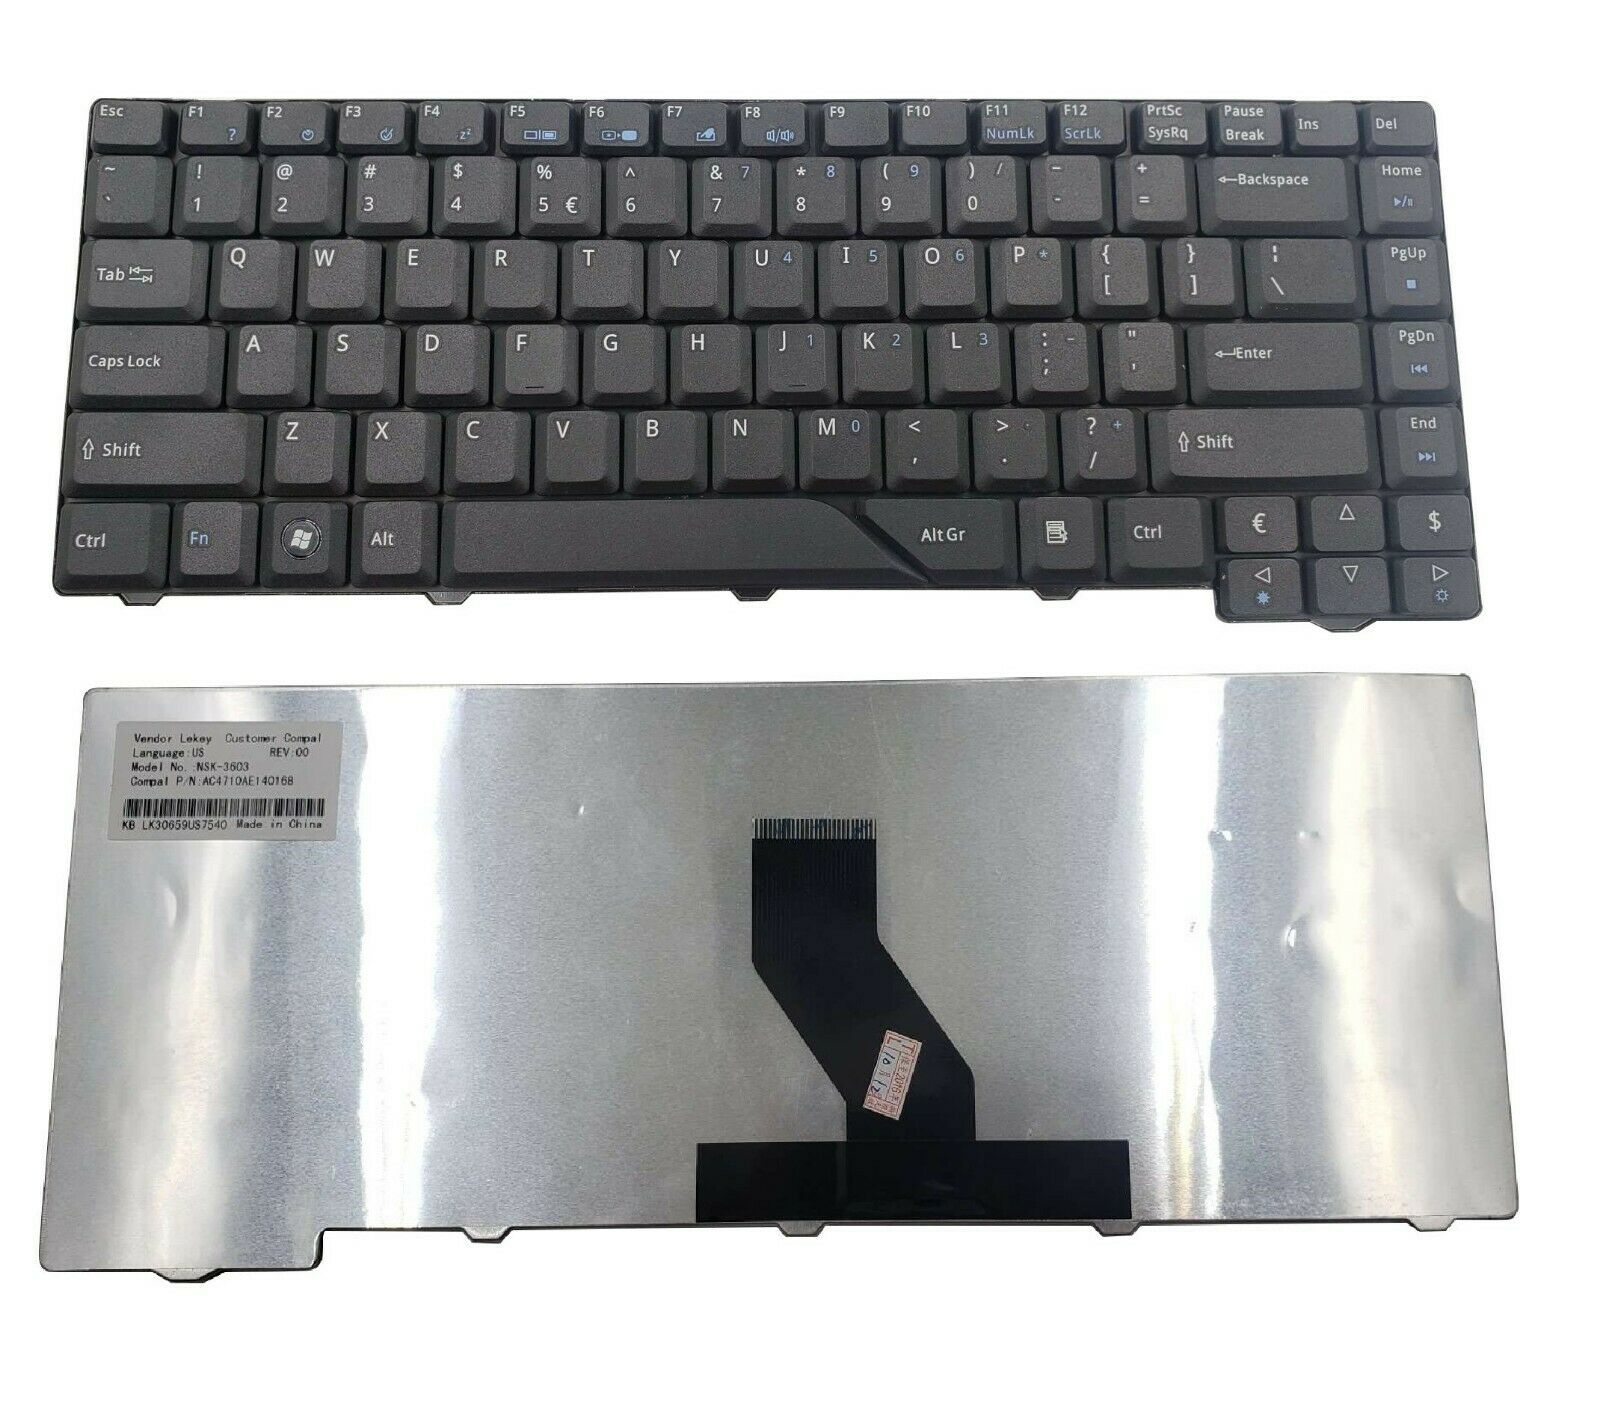 ACER Aspire 4710 5920 4530 4910 5720 4715 4730Z 4937 4930G KEYBOARD